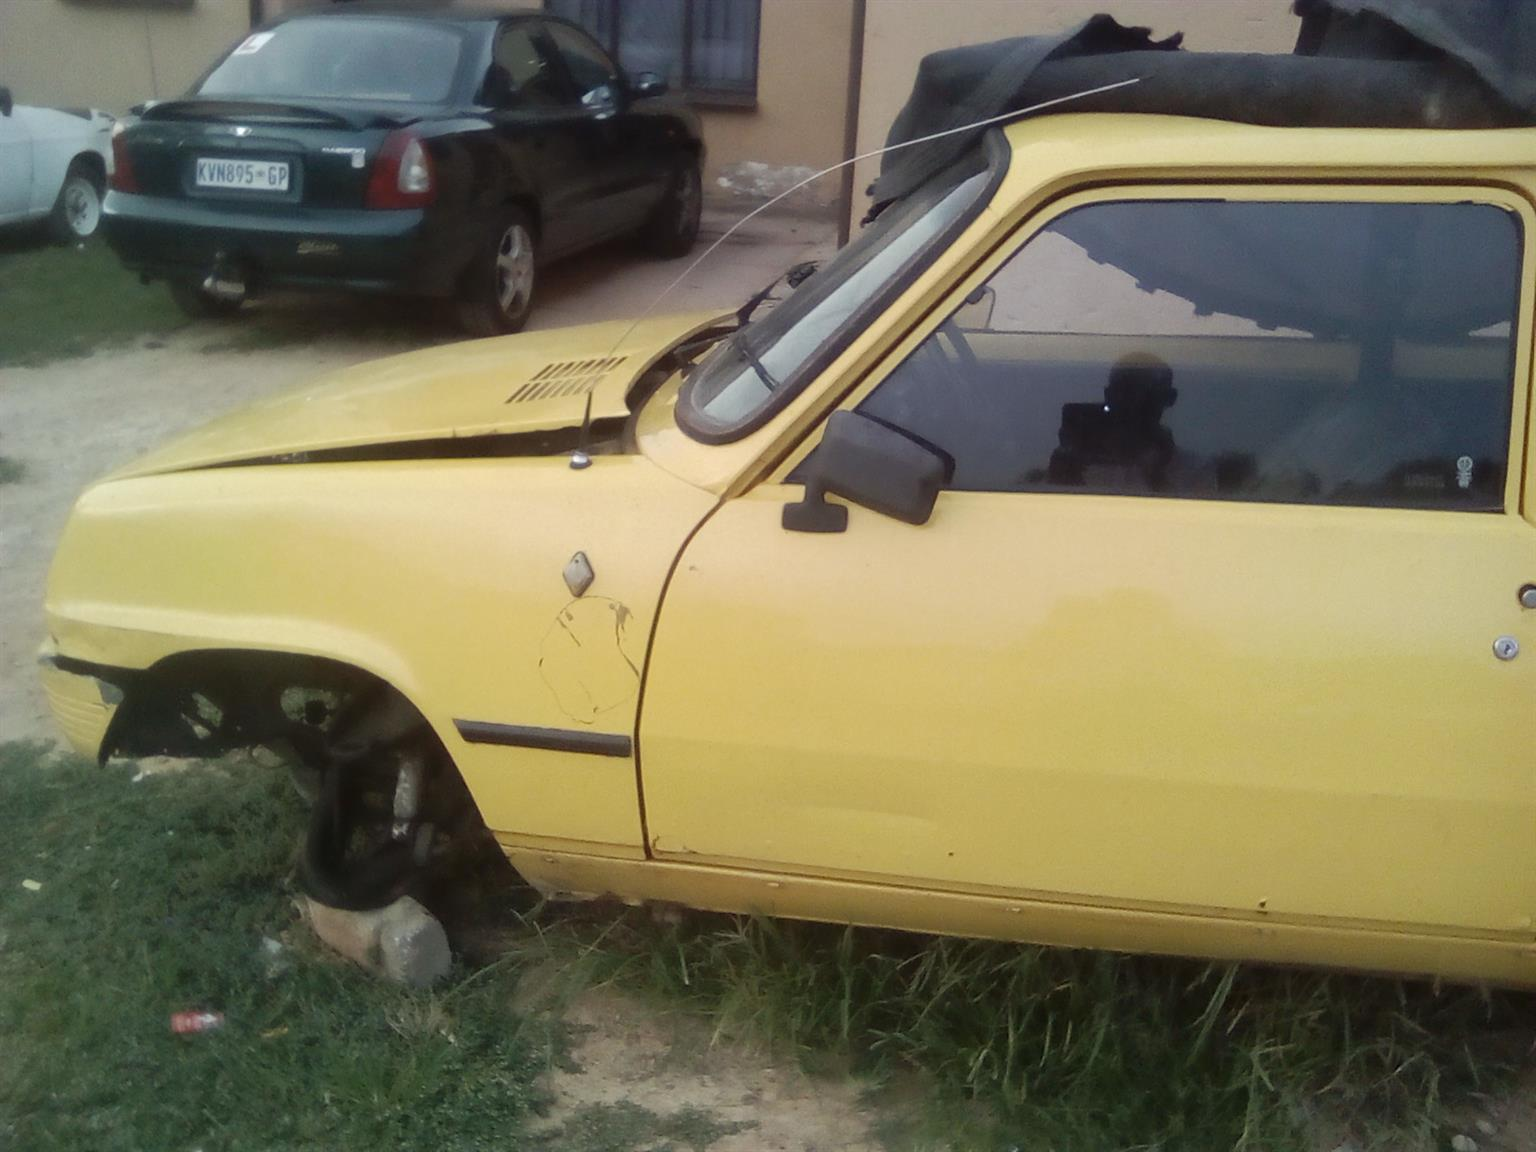 Renault 5 used parts for sale in Gauteng